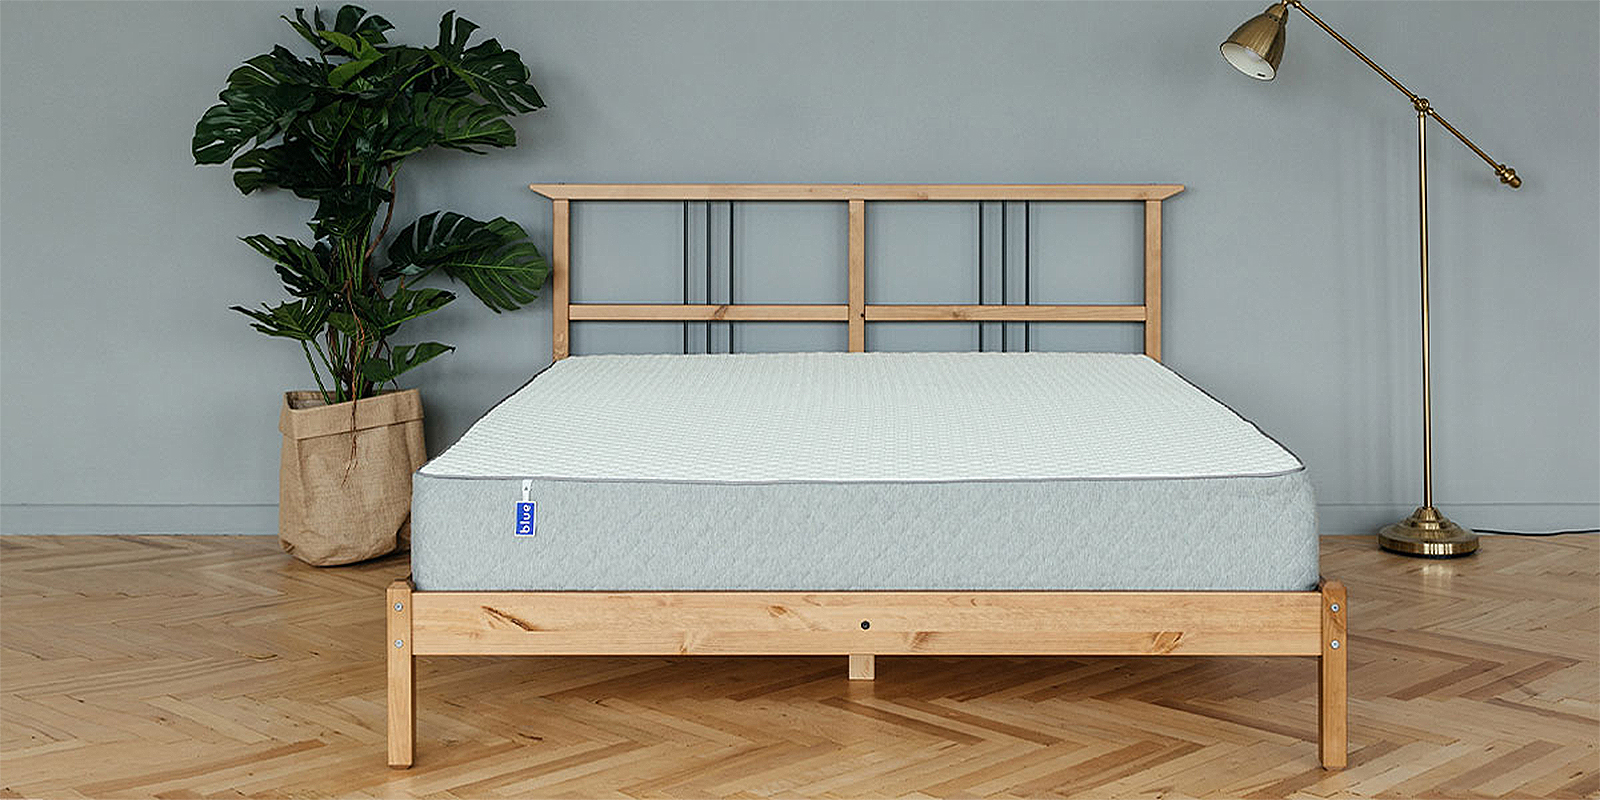 Матрас Blue Sleep 120х200